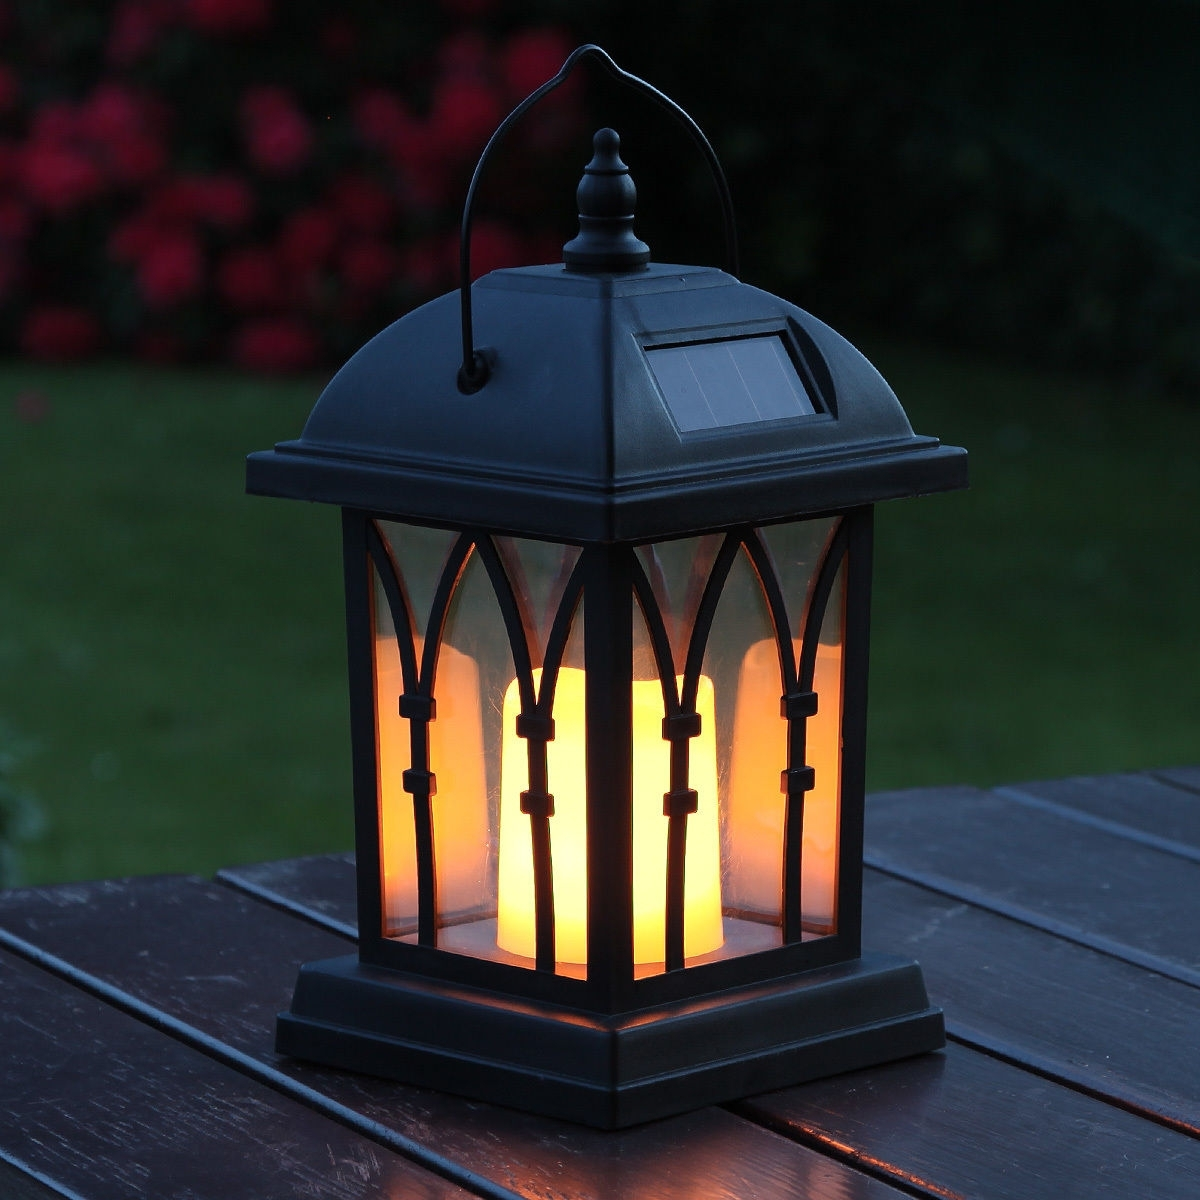 Fashionable Outdoor Décor Candle Lanterns , Garden Lighting , Garden & Patio For Outdoor Empty Lanterns (View 20 of 20)